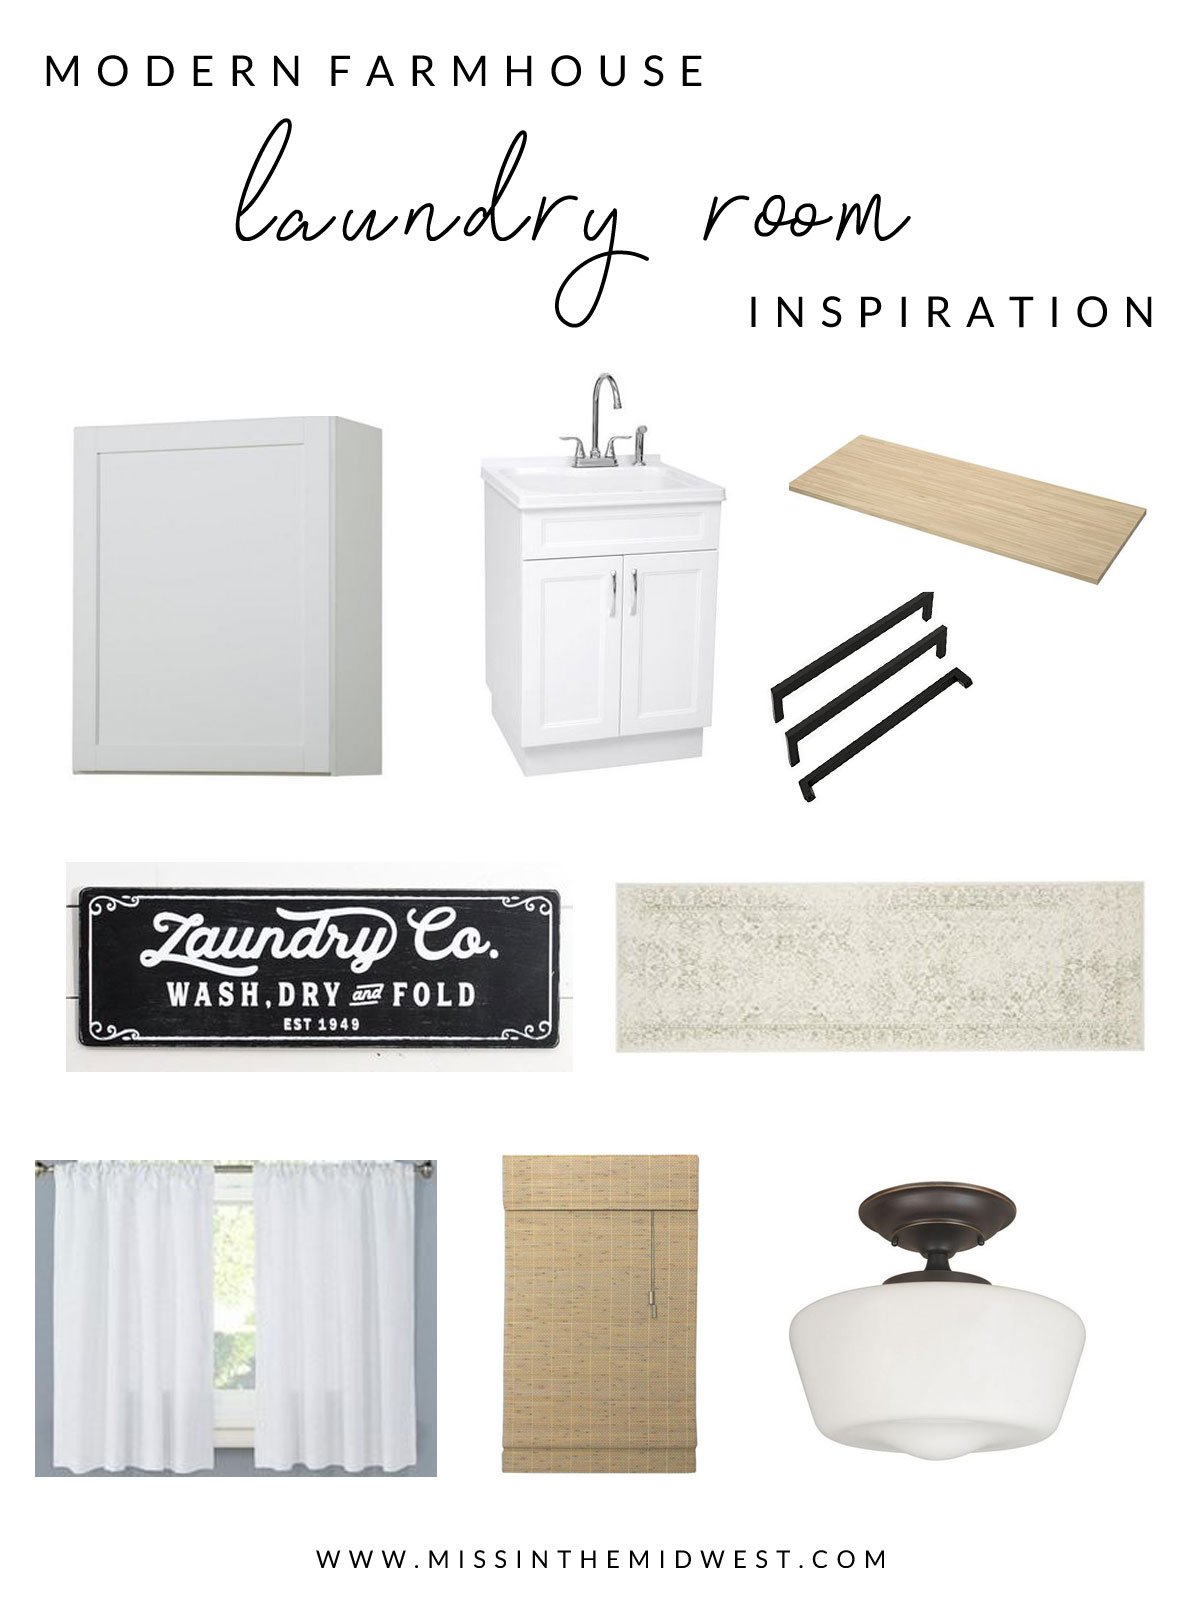 Modern Farmhouse Laundry Room Inspiration mood board